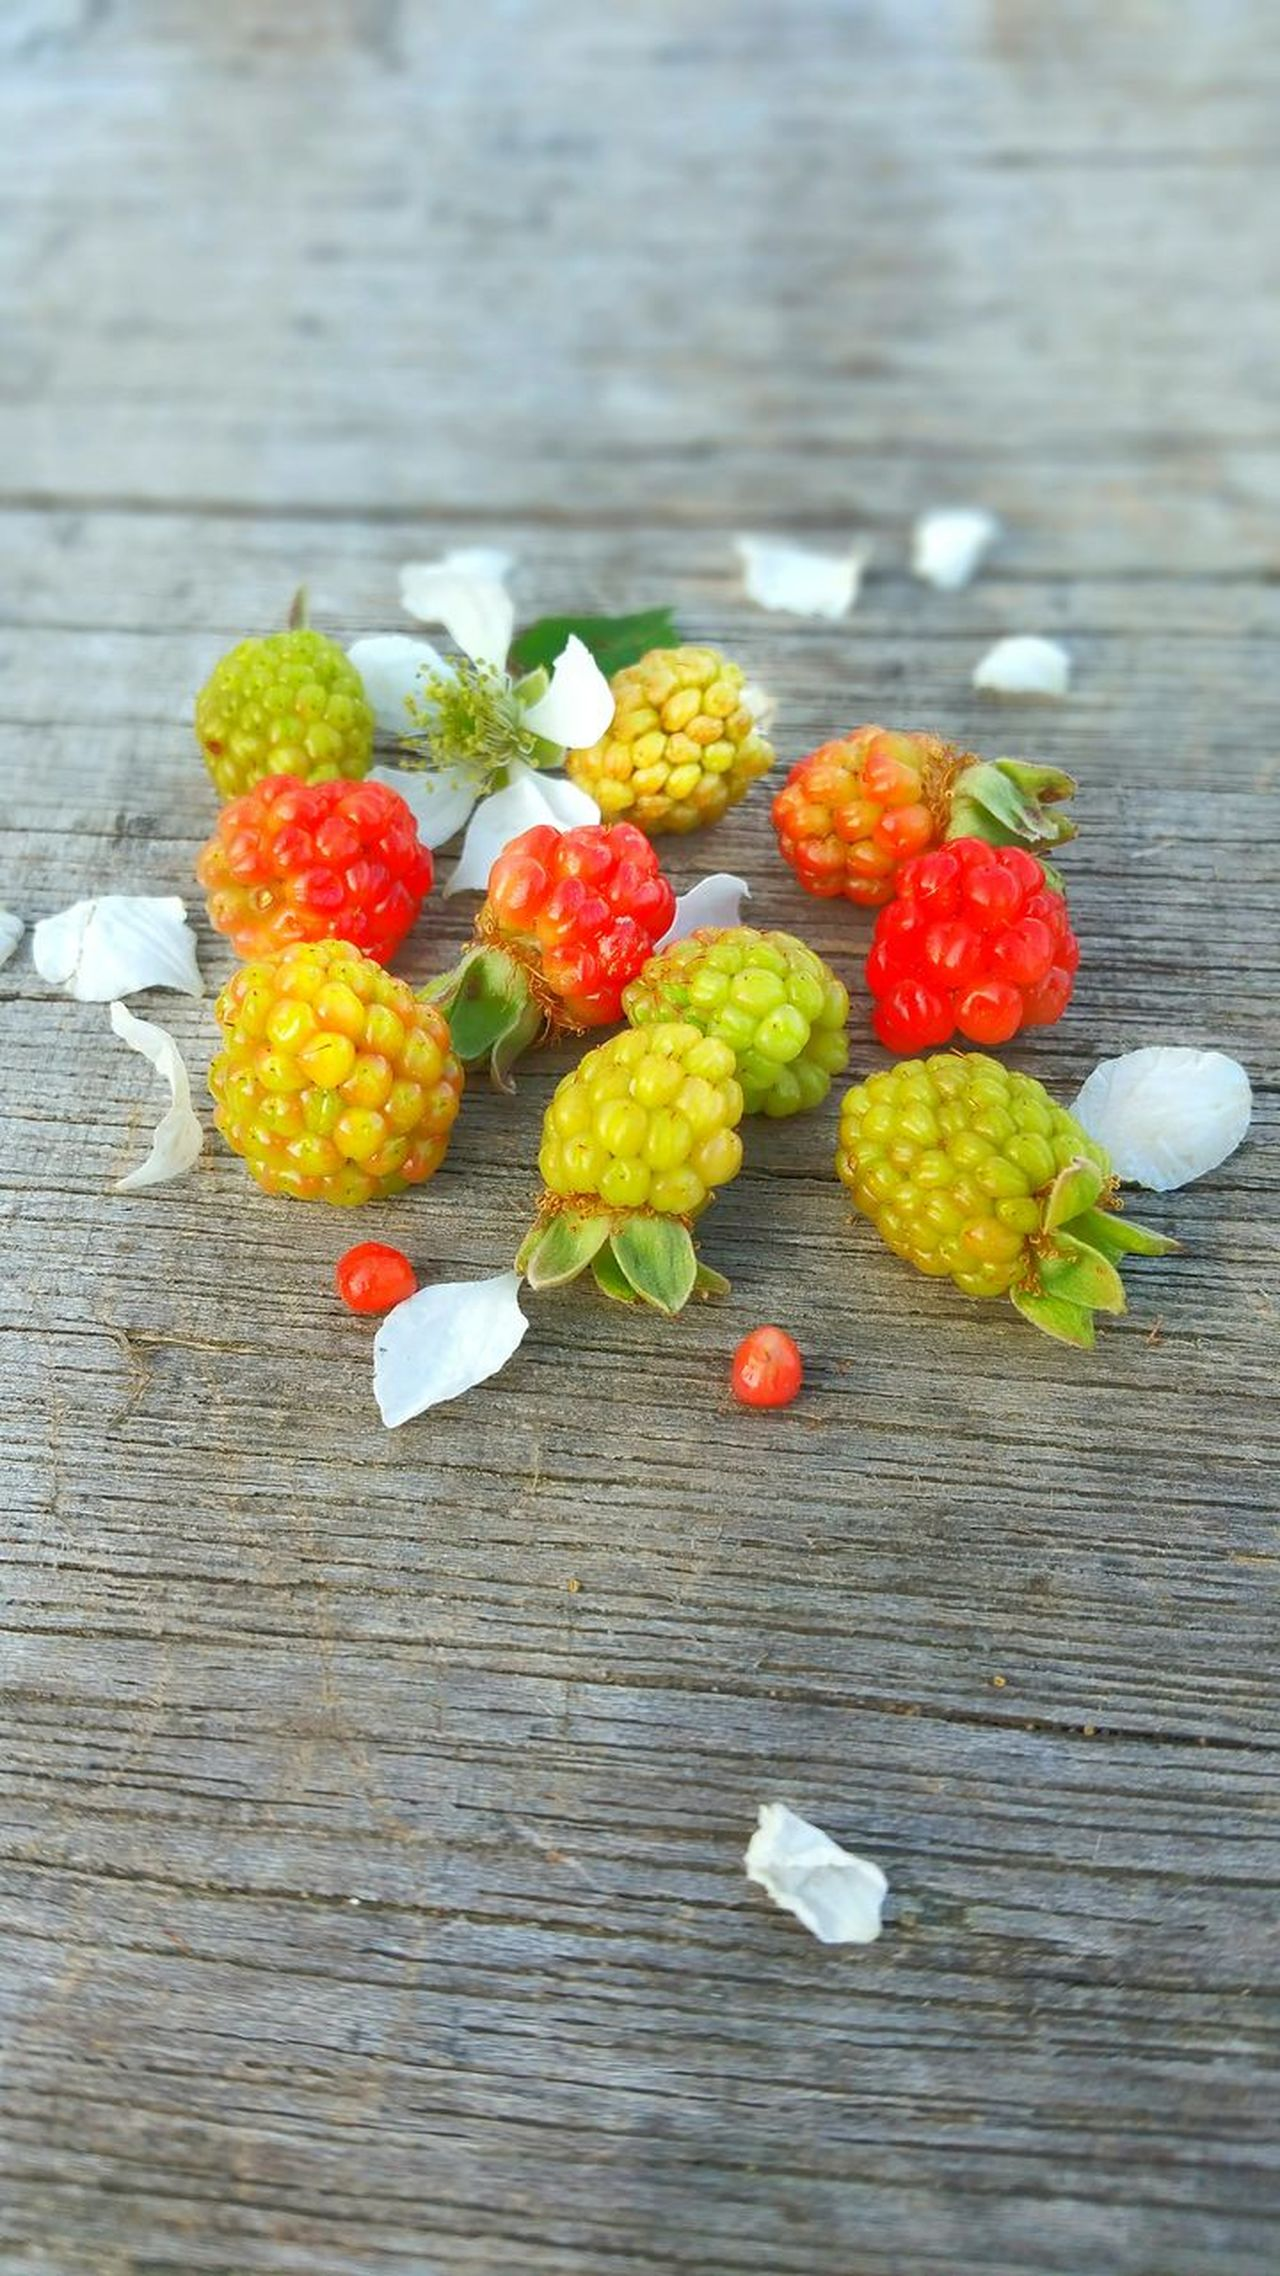 Healthy Eating Fruit Freshness Food Variation Multi Colored Healthy Lifestyle Red Food And Drink No People Close-up Ready-to-eat Outdoors Day Wild Berries Blackberry Dew Berries Weathered Wood Backgrounds Wild Blackberries Unripe Room For Copy Room For Text Wild Flower Visual Feast